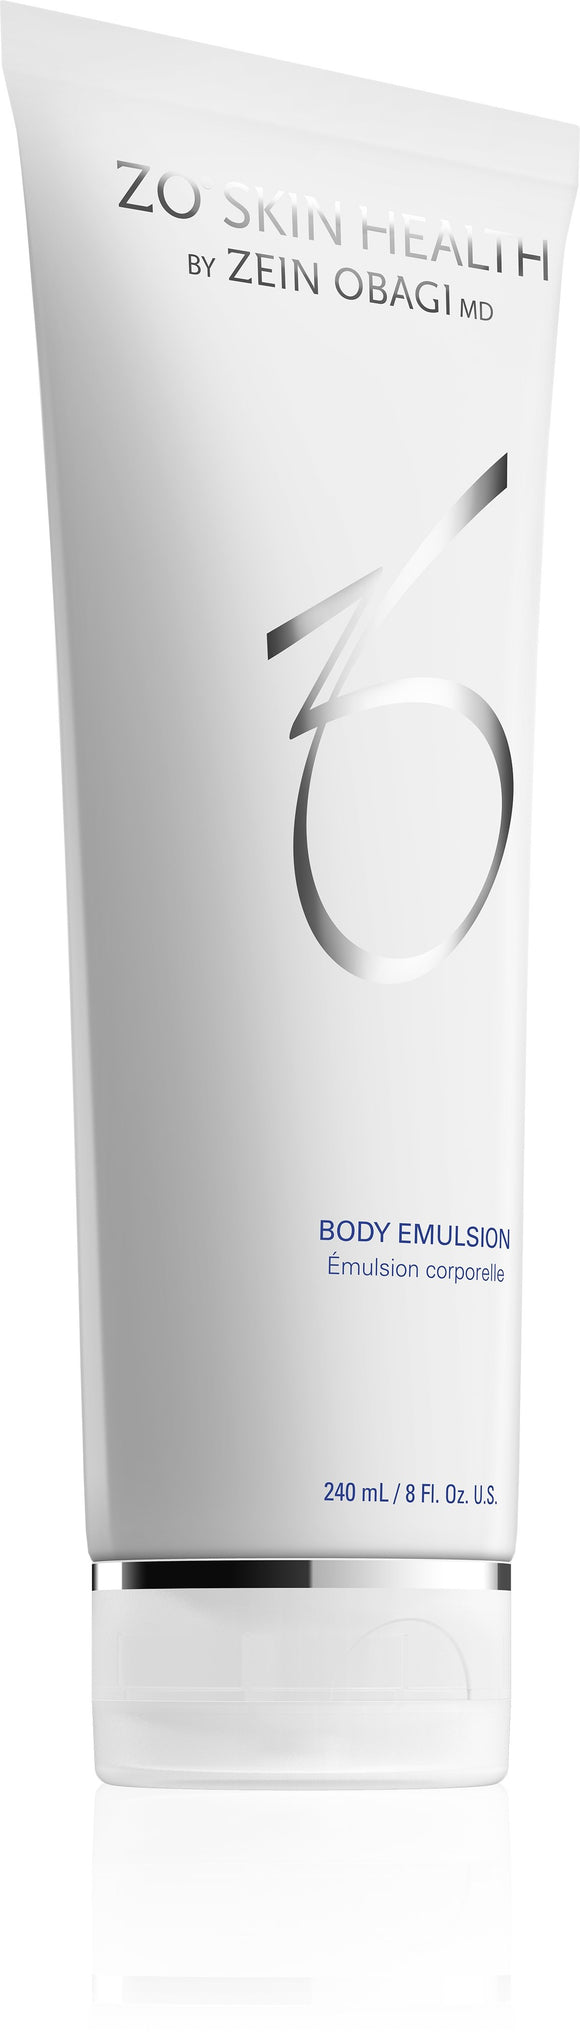 Zo Skin Health - Body Emulsion 240 ml - skinandcare